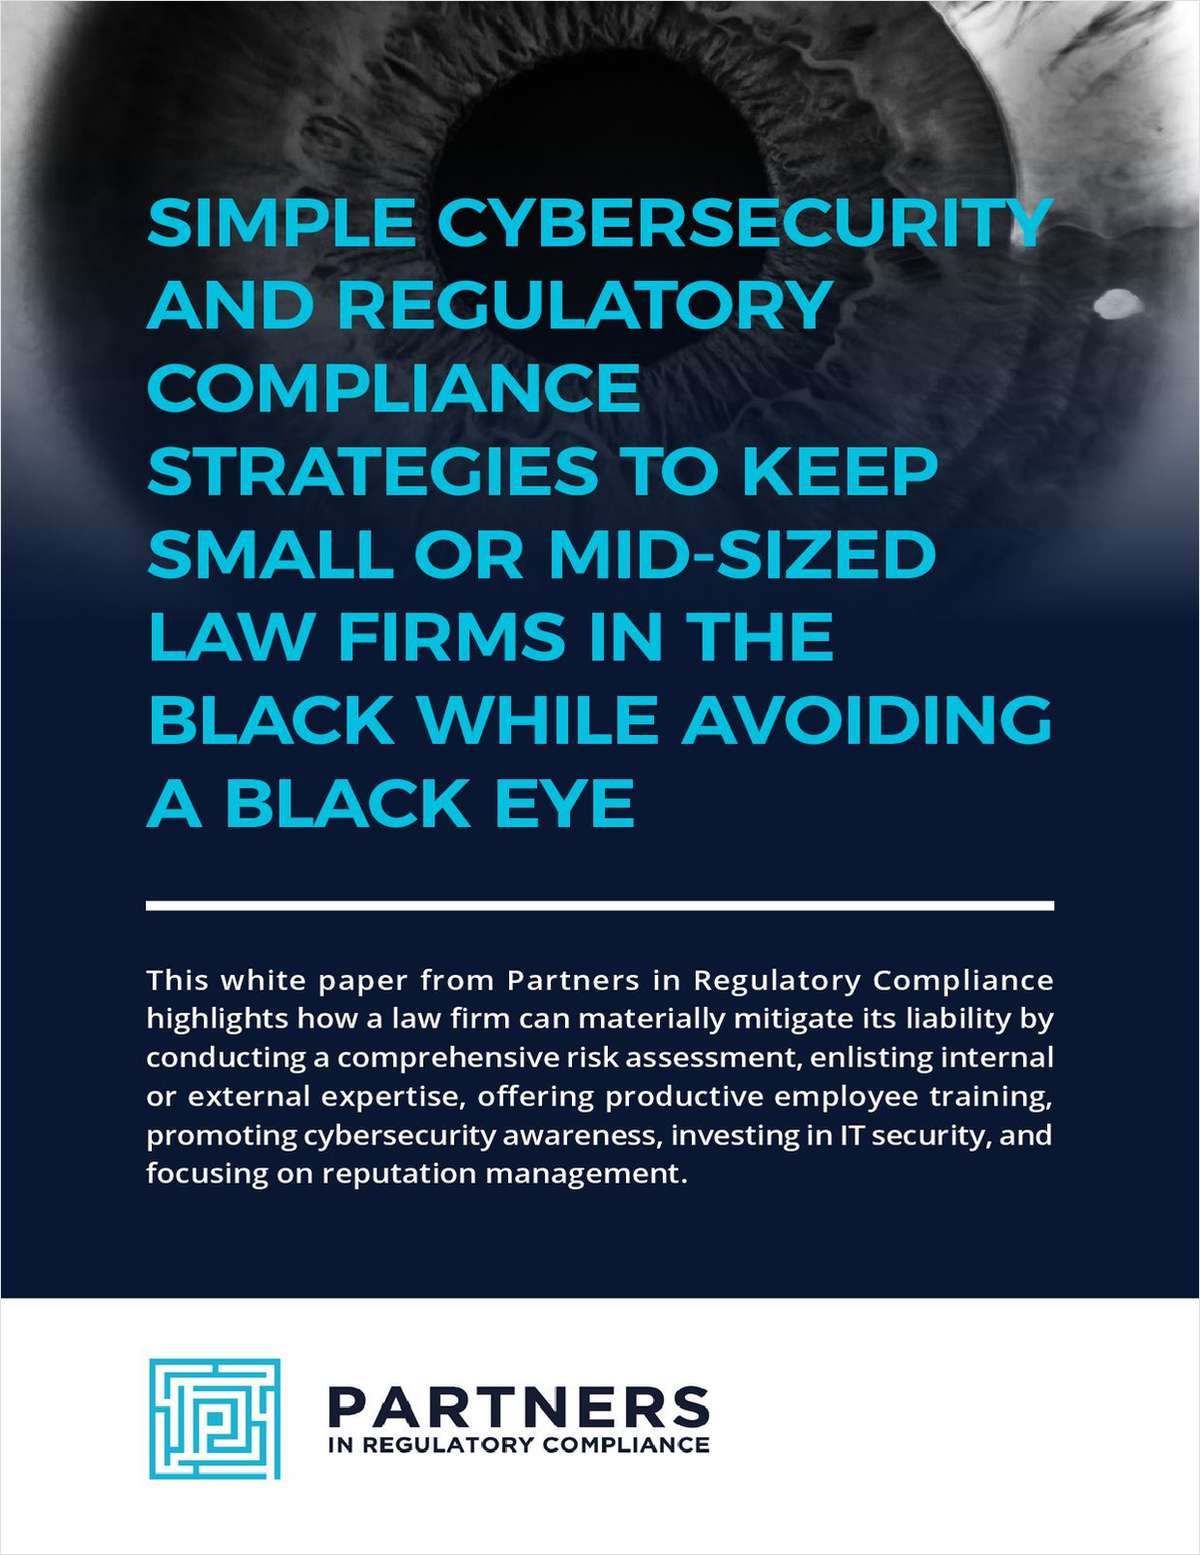 Simple Cybersecurity and Compliance Strategies to Protect Small or Mid-sized Law Firms